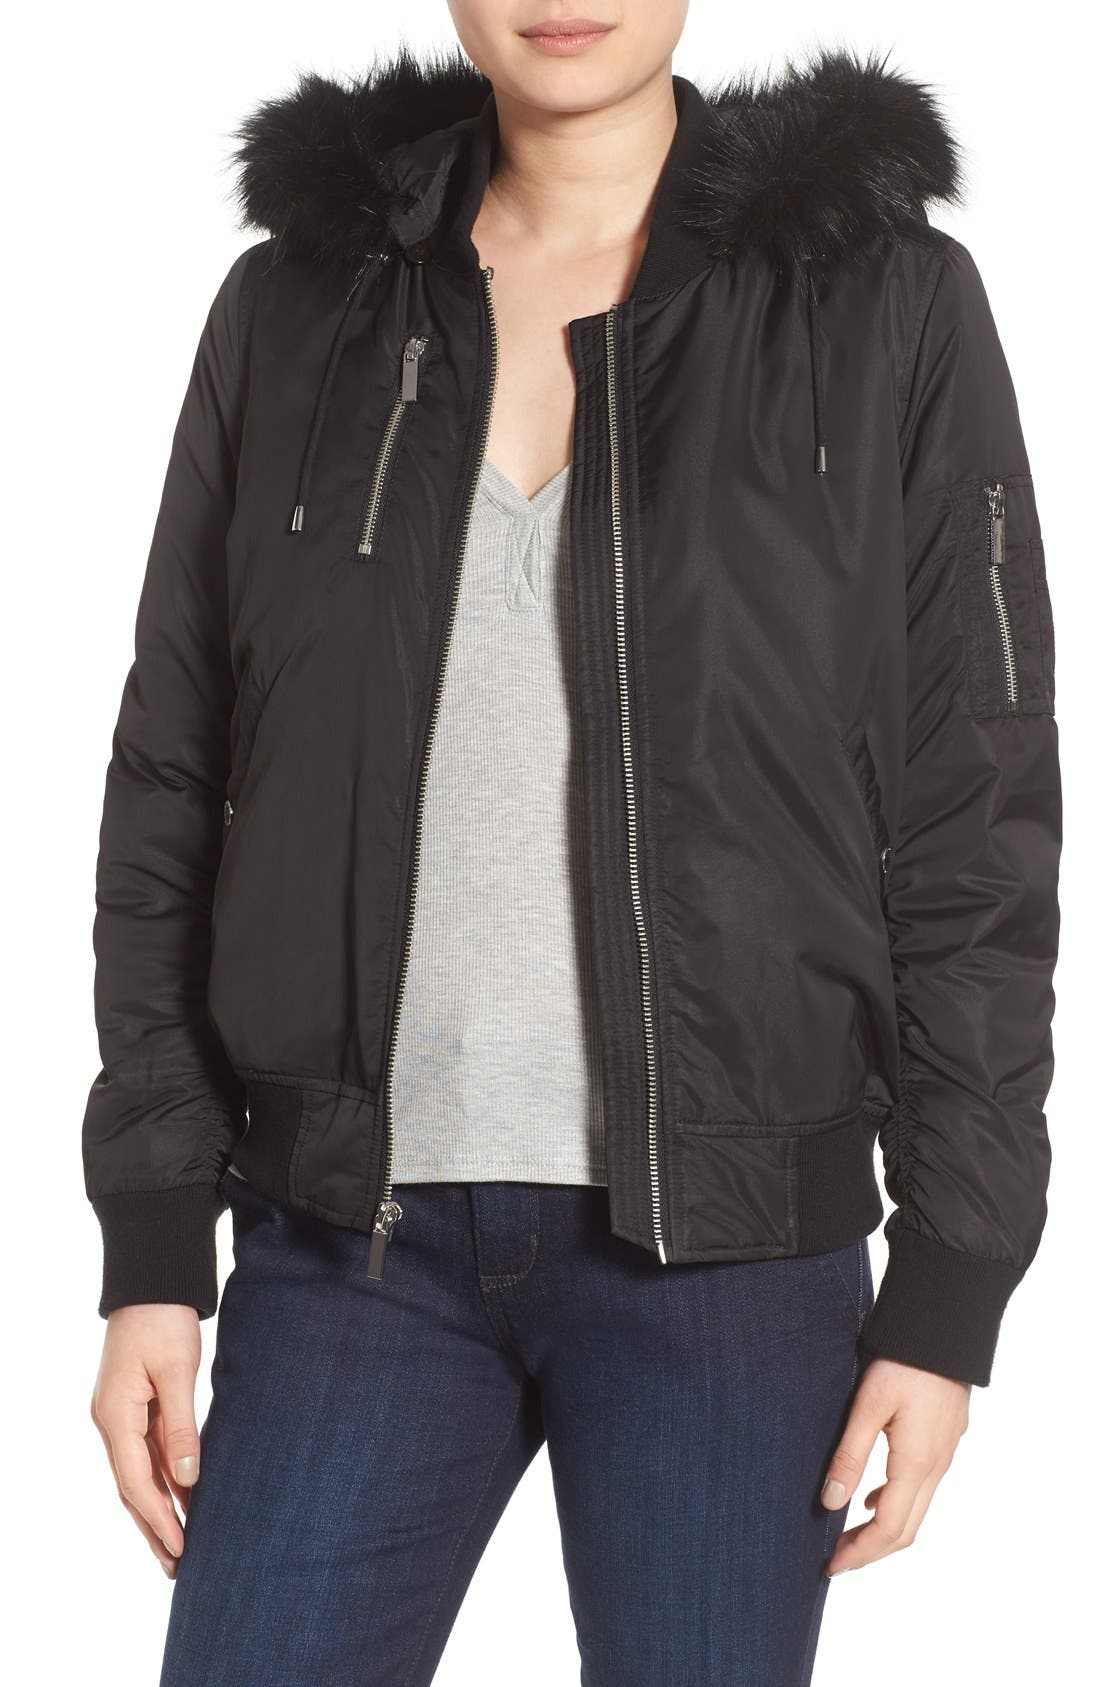 'Varsity' Hooded Bomber Jacket with Faux Fur Trim,                             Main thumbnail 1, color,                             Black